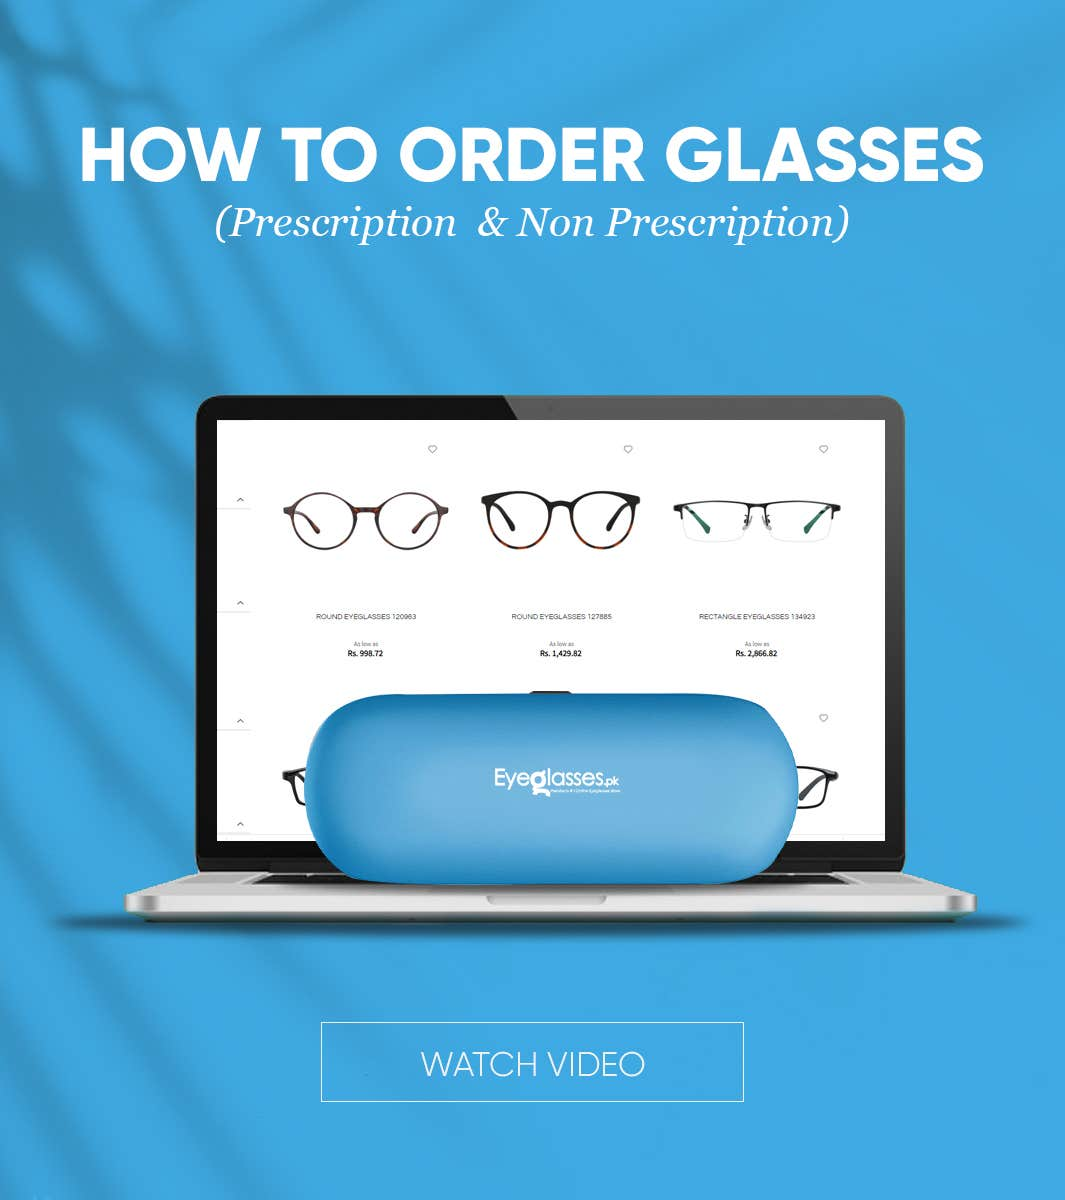 How To Order At Eyeglassespk